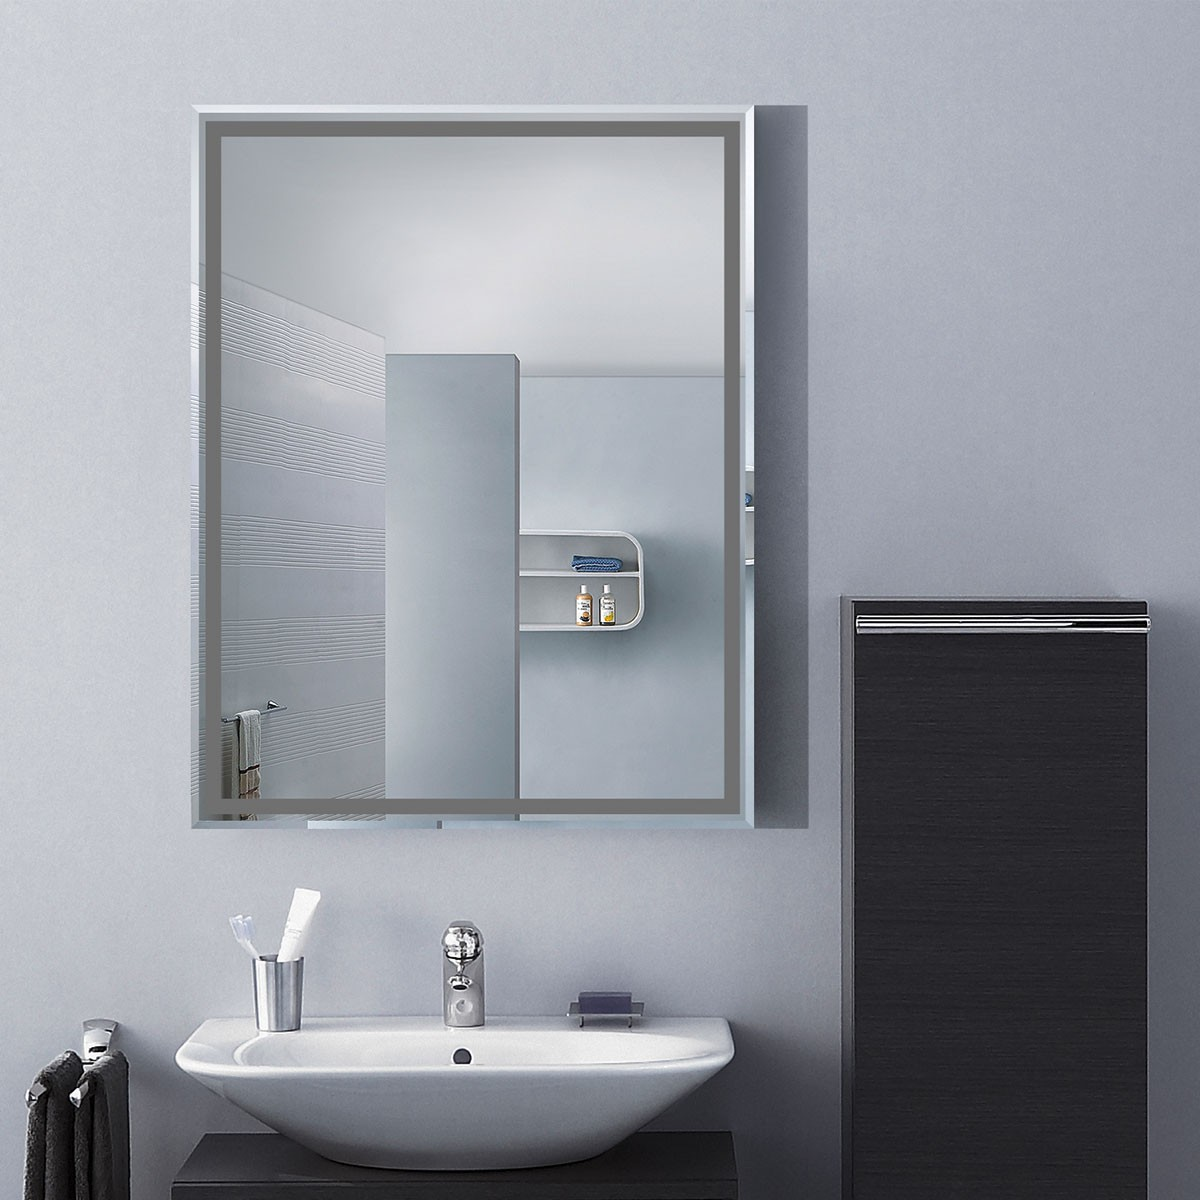 18 x 24 In. Wall-mounted Rectangle Bathroom Mirror (DK-OD-C226C)